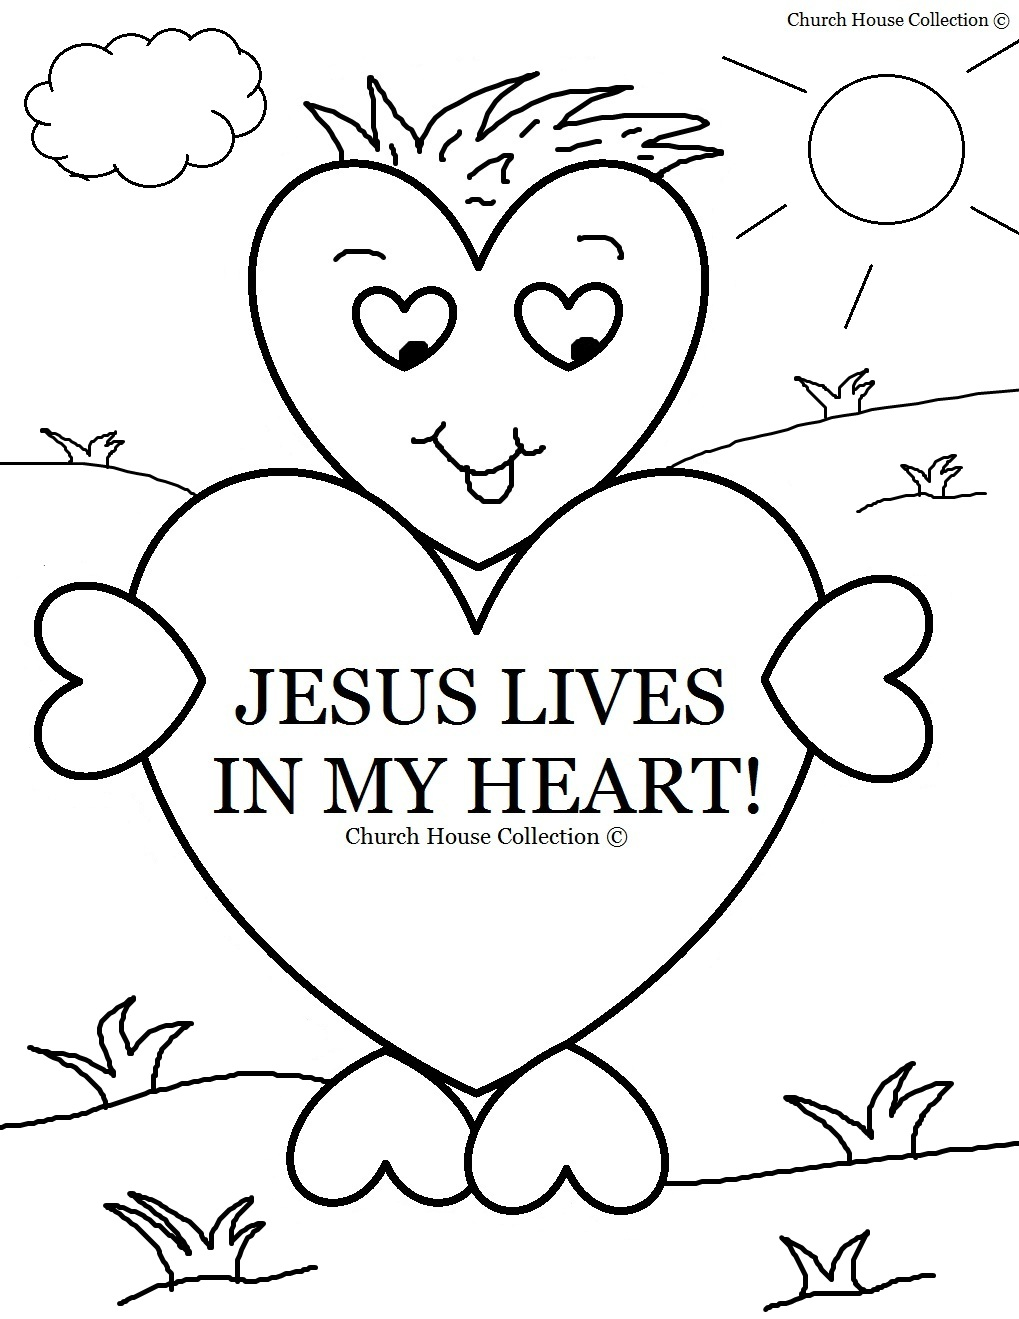 Childrens day coloring pages for church